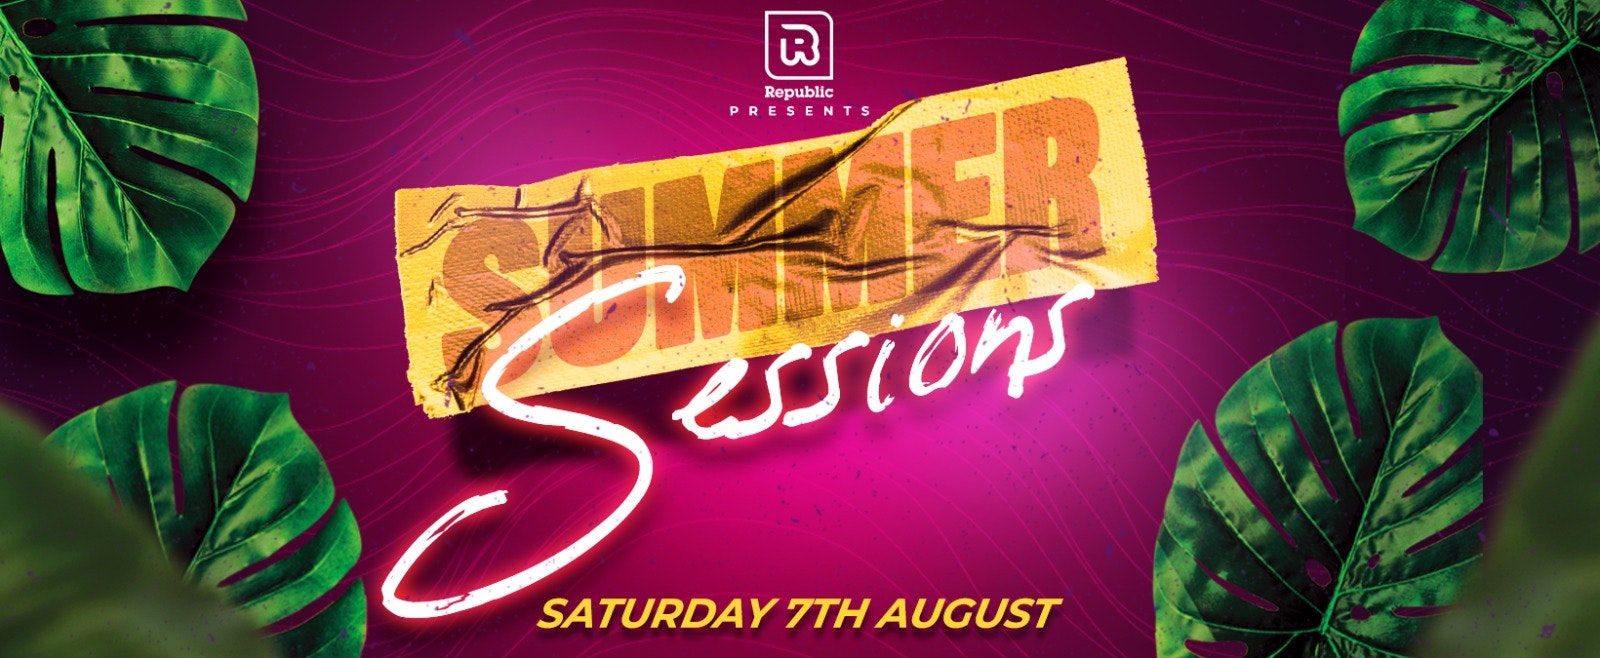 Summer Sessions feat Ryan Arnold, DJ Dre, OPD & Rachel Rodigruez – Tickets from ONLY £5!